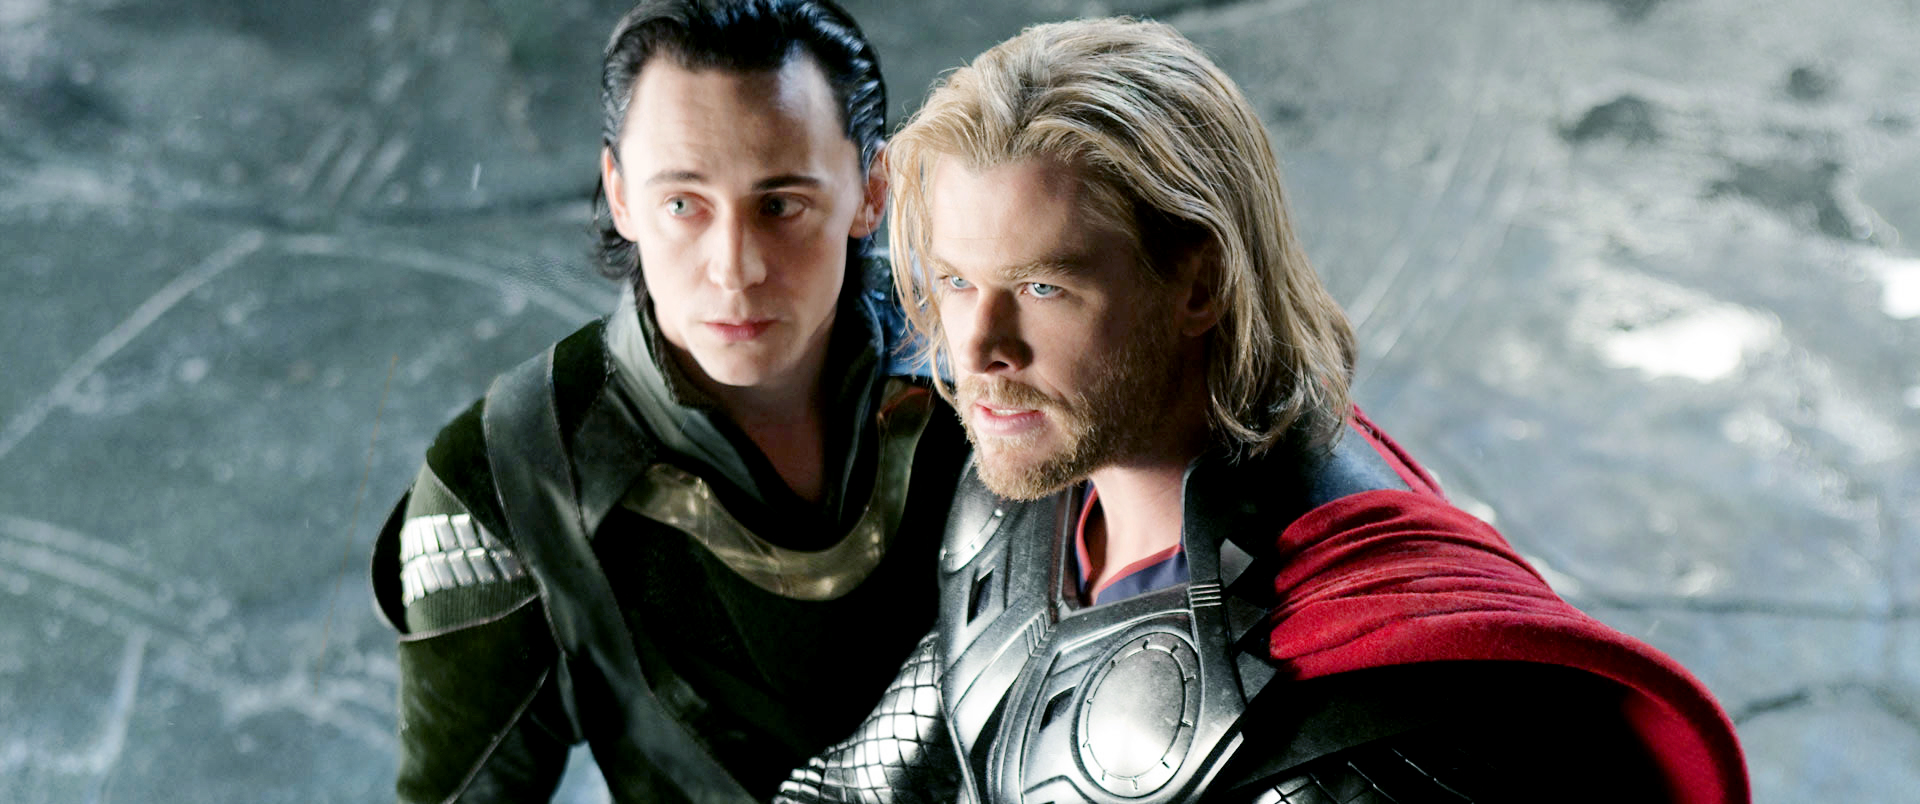 https://i1.wp.com/static.tumblr.com/im71lug/jo9n9in6b/loki-thor_480.jpg1.jpg